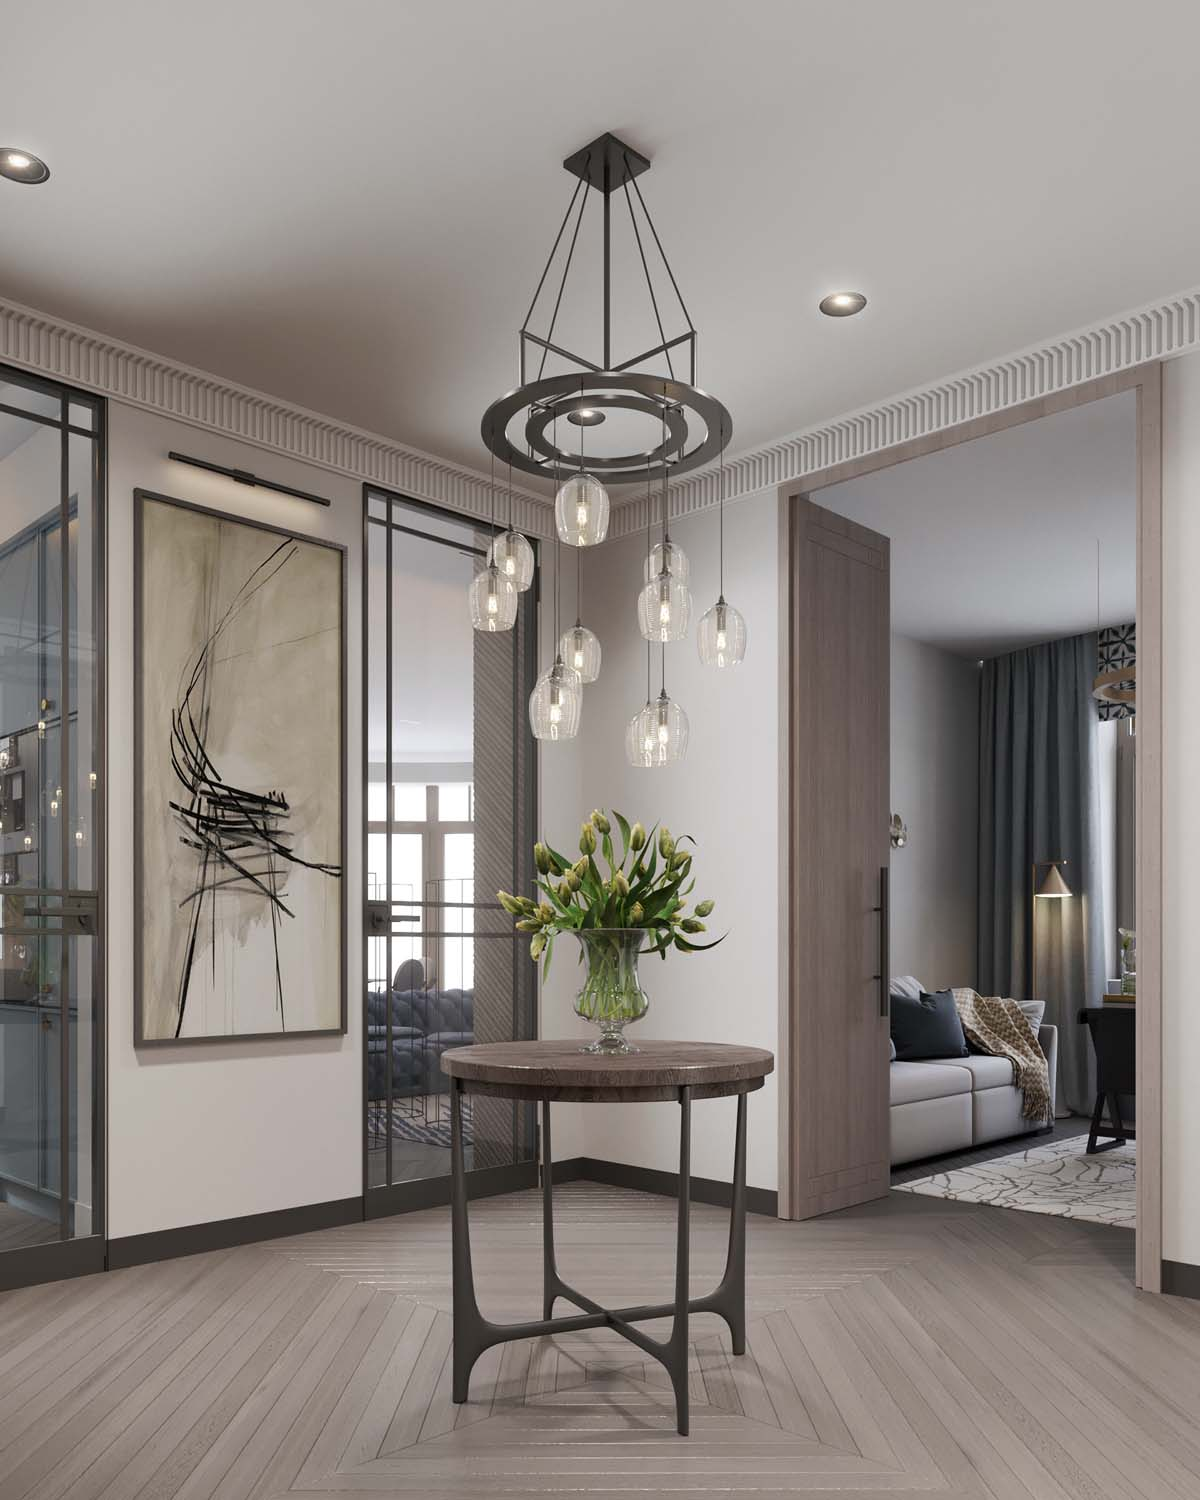 A Luxurious Home Interior with Pretty, Muted Pastel Colors images 13